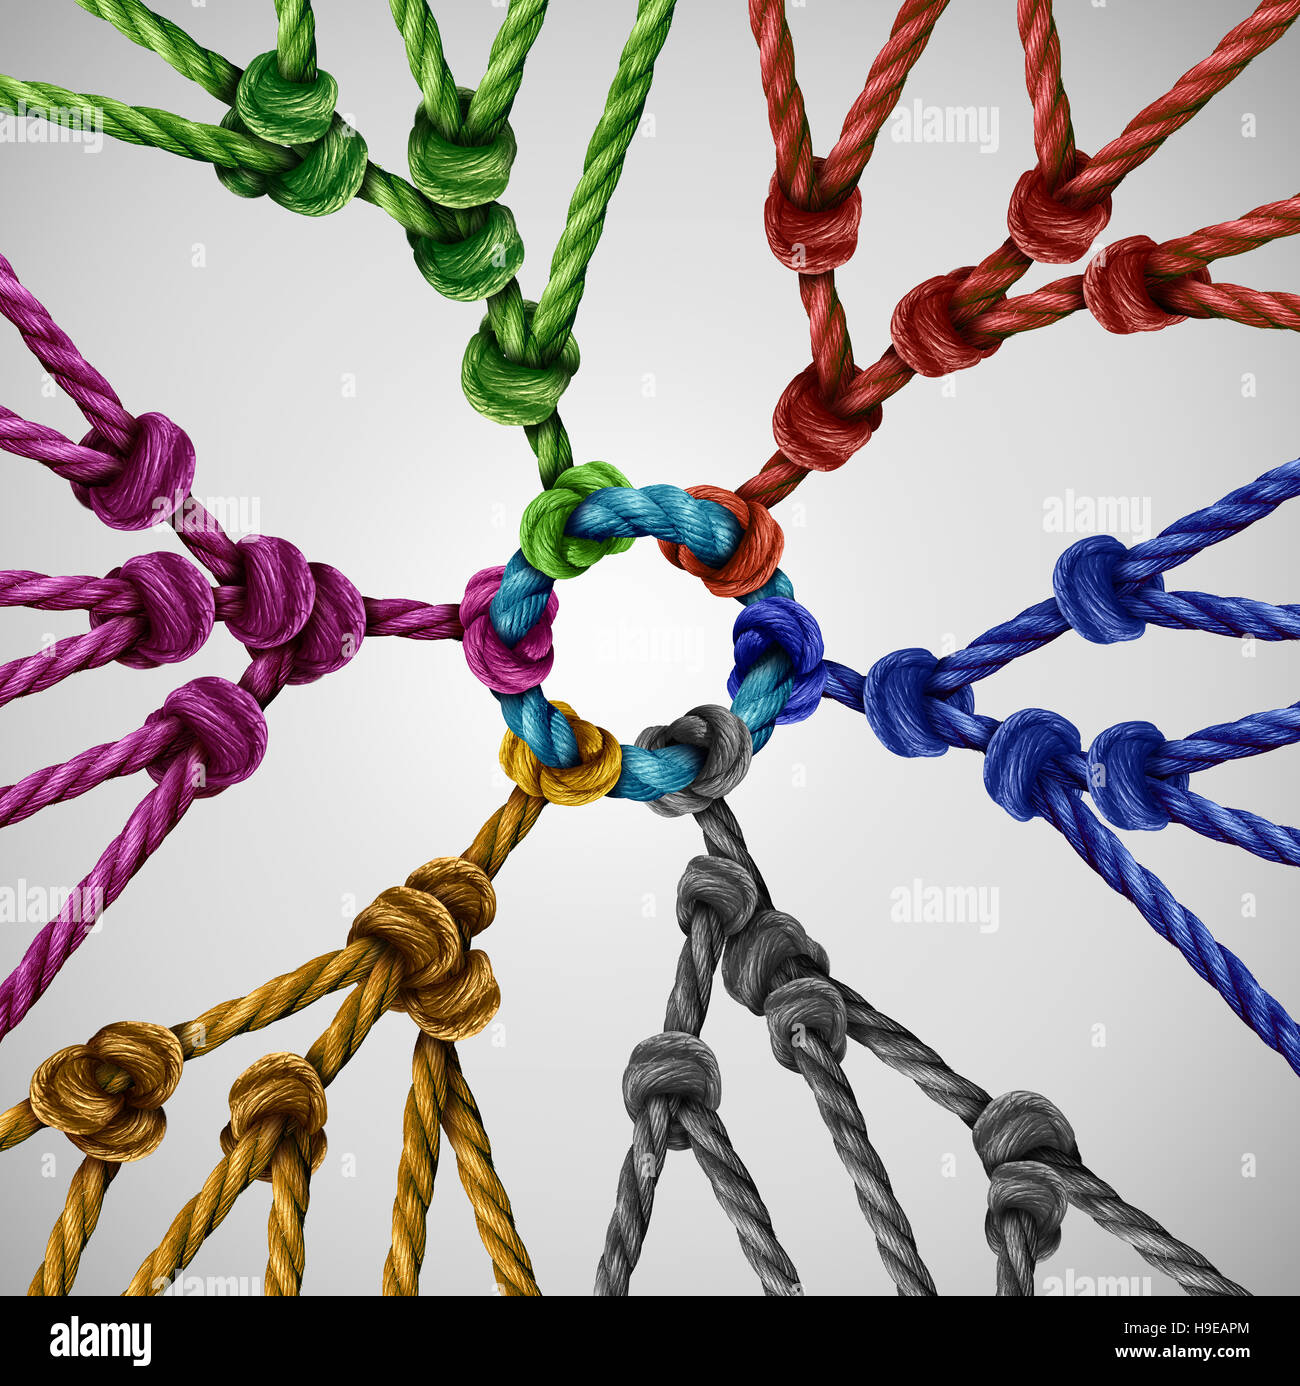 Team groups network as individual diverse teams coming together connected to a central point as an abstract communication - Stock Image